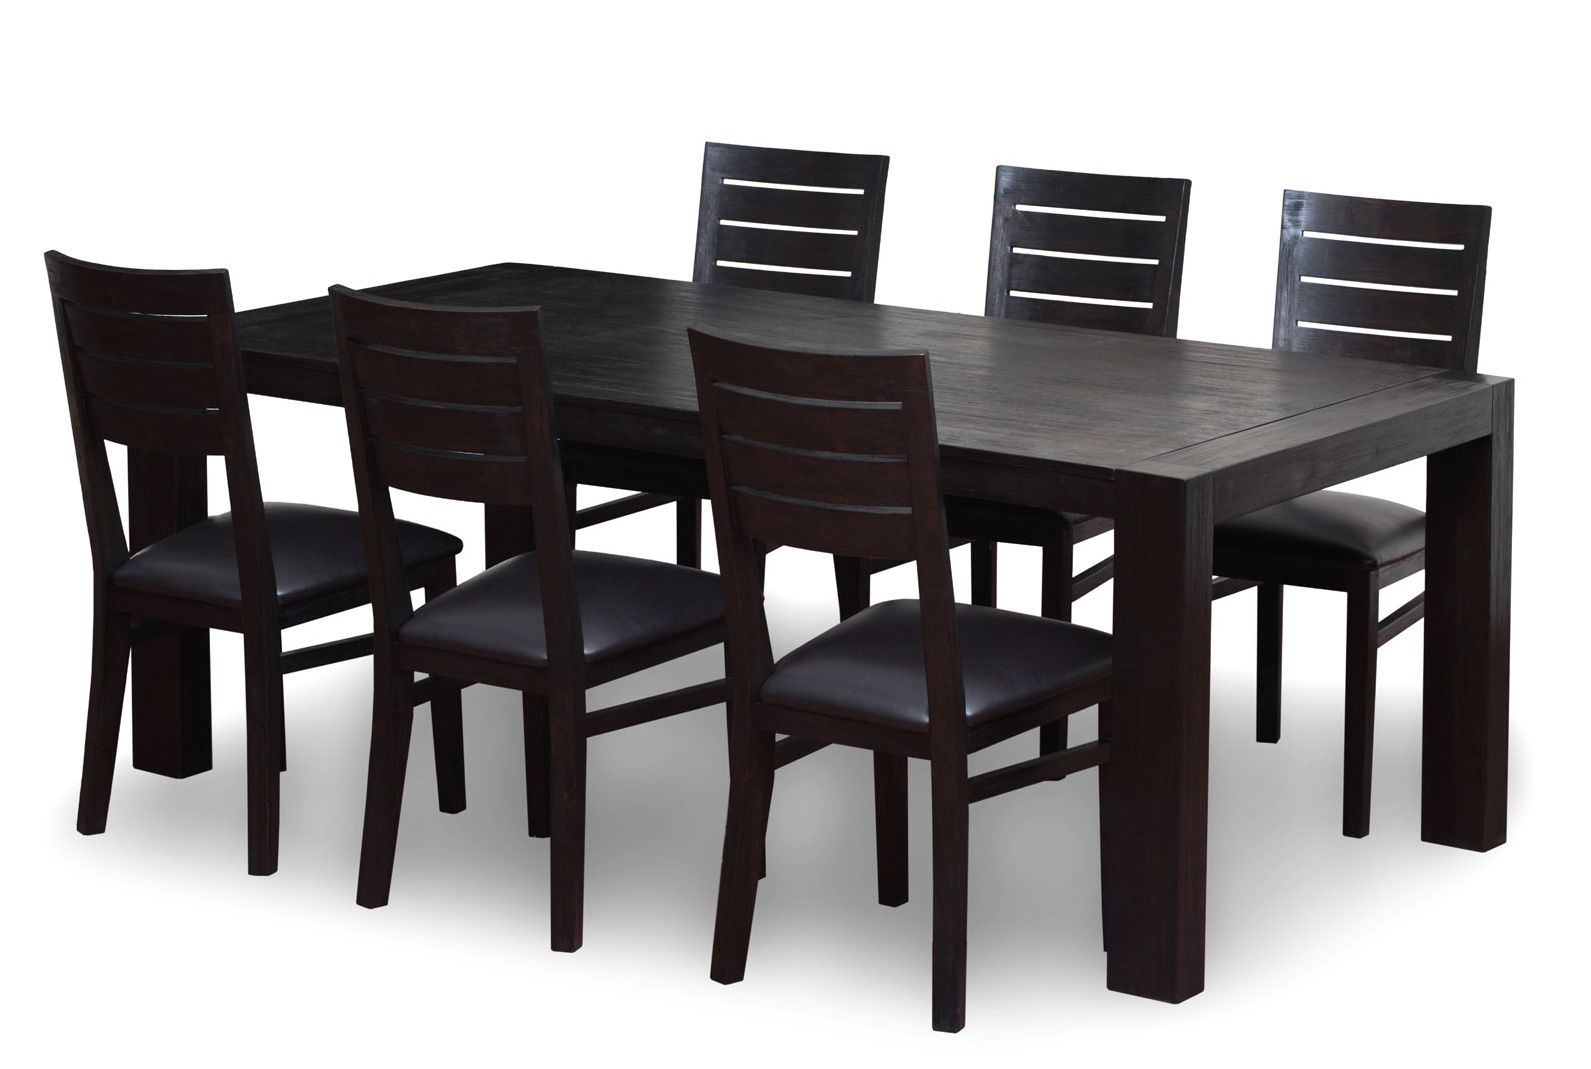 Good Costco Dining Table Set Walmart Black With Chairs